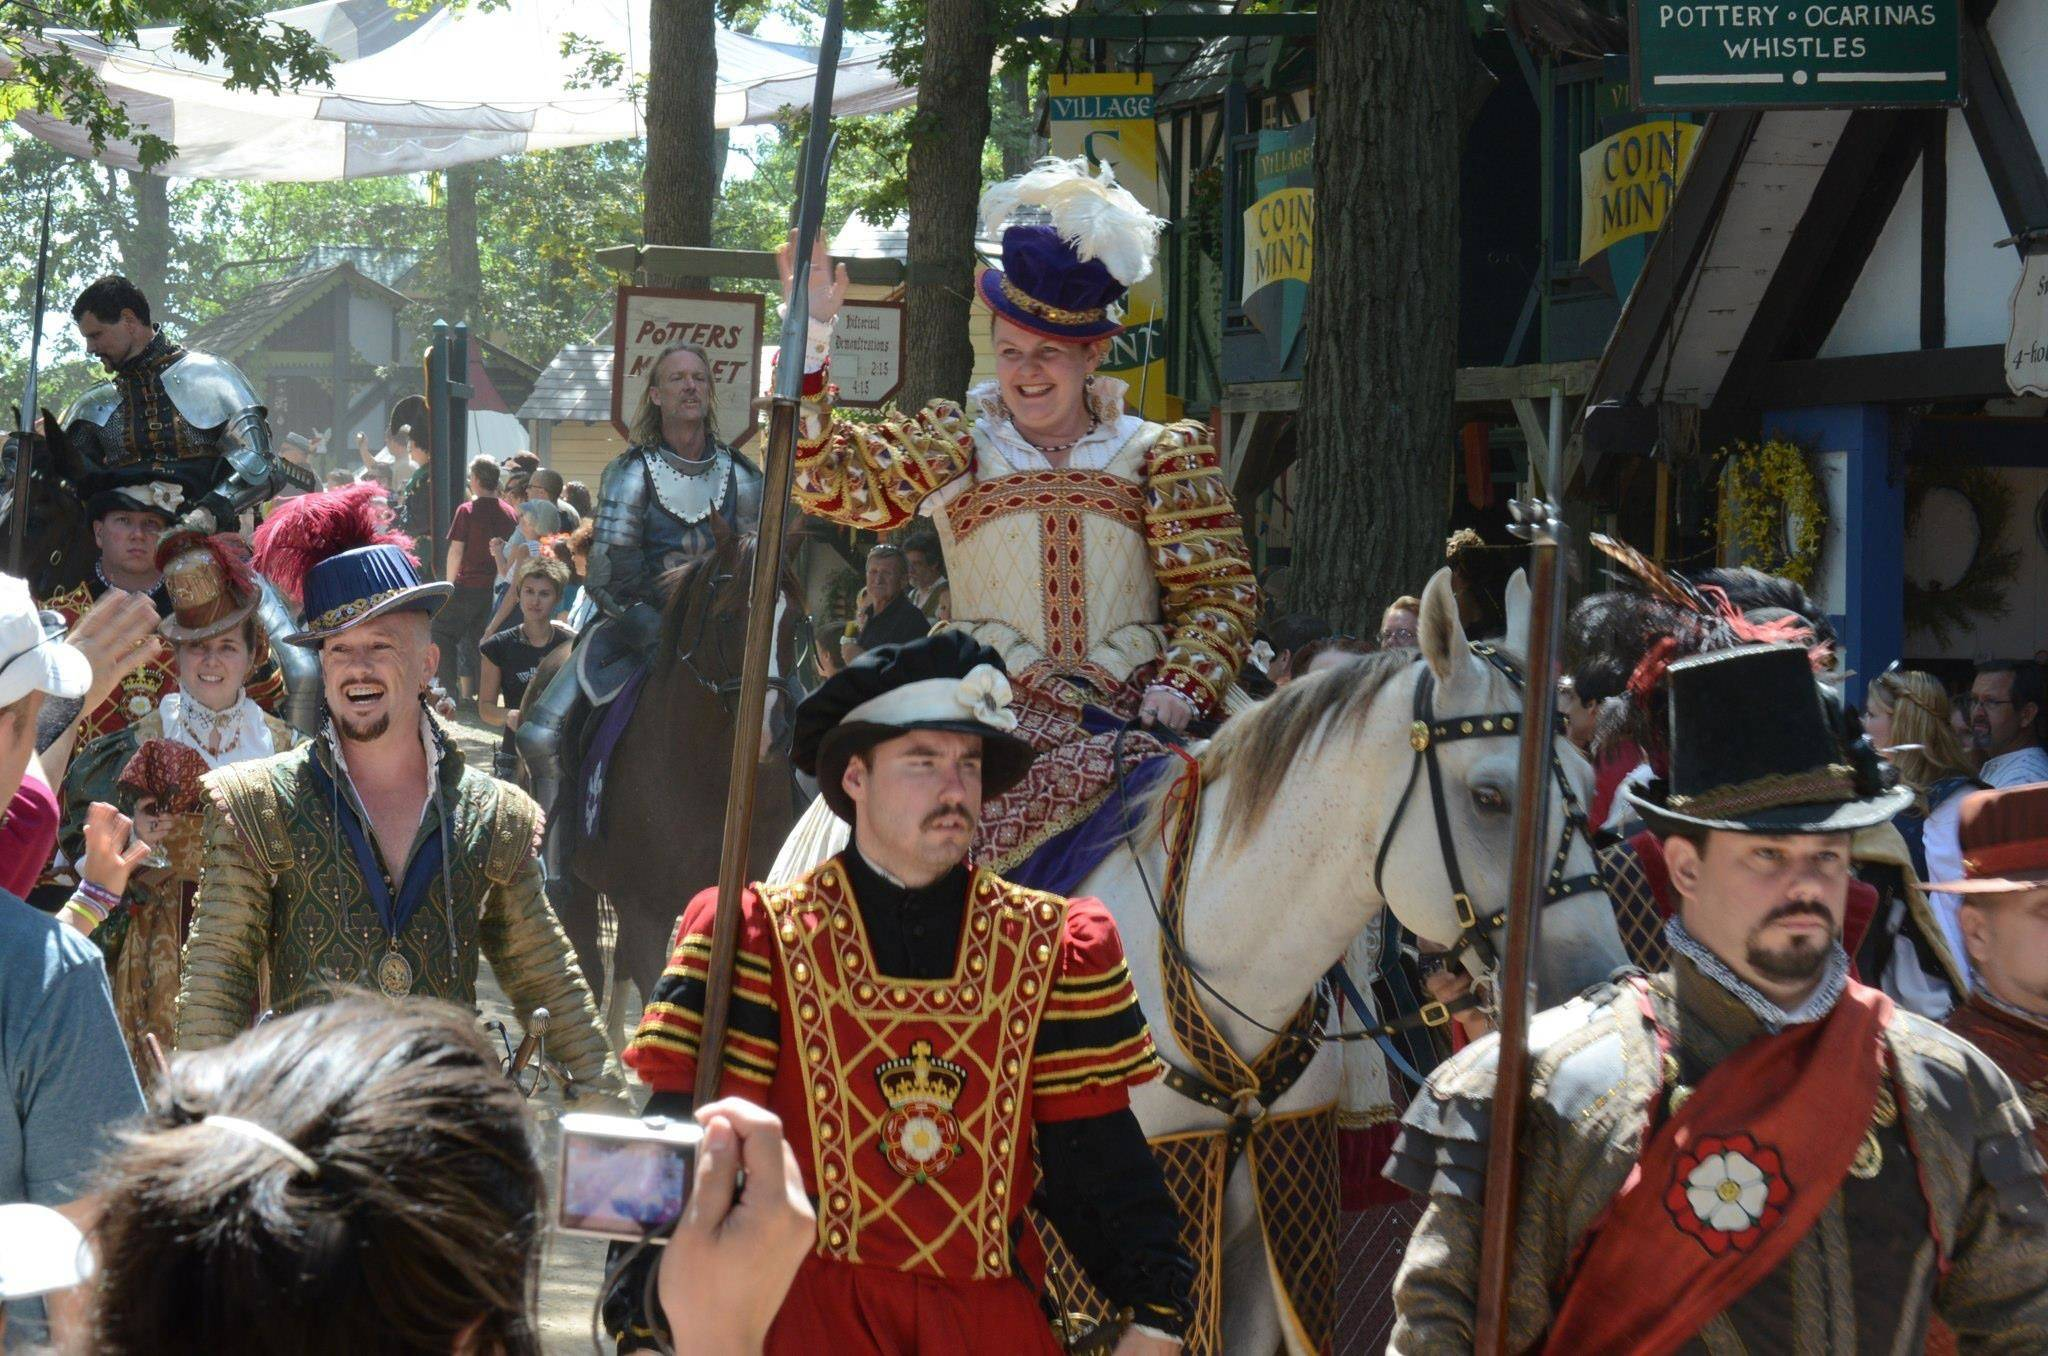 Sunday picks: Bristol Renaissance Faire closes for the season